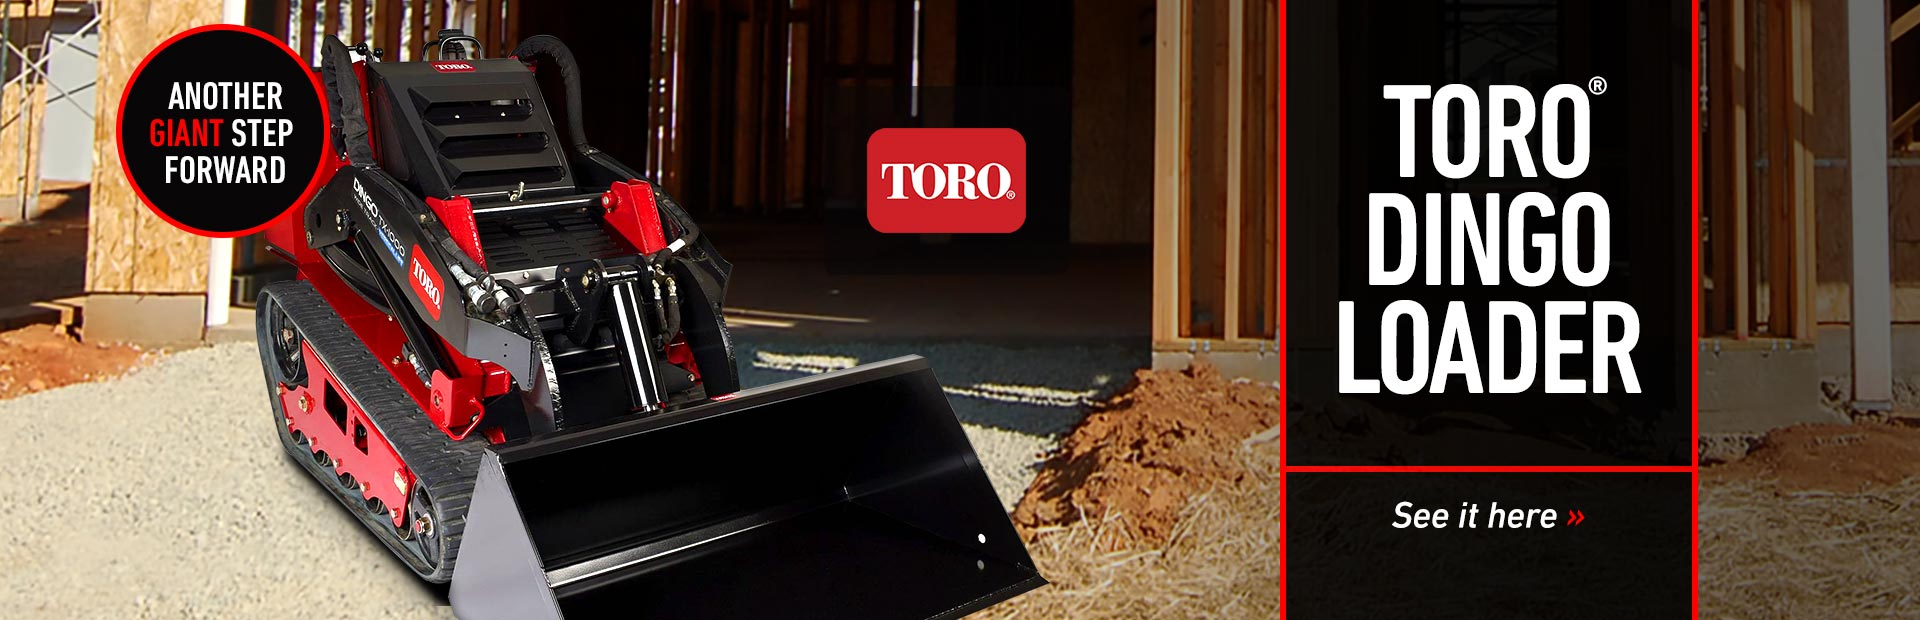 Toro Dingo Loaders: Click here to view the models.